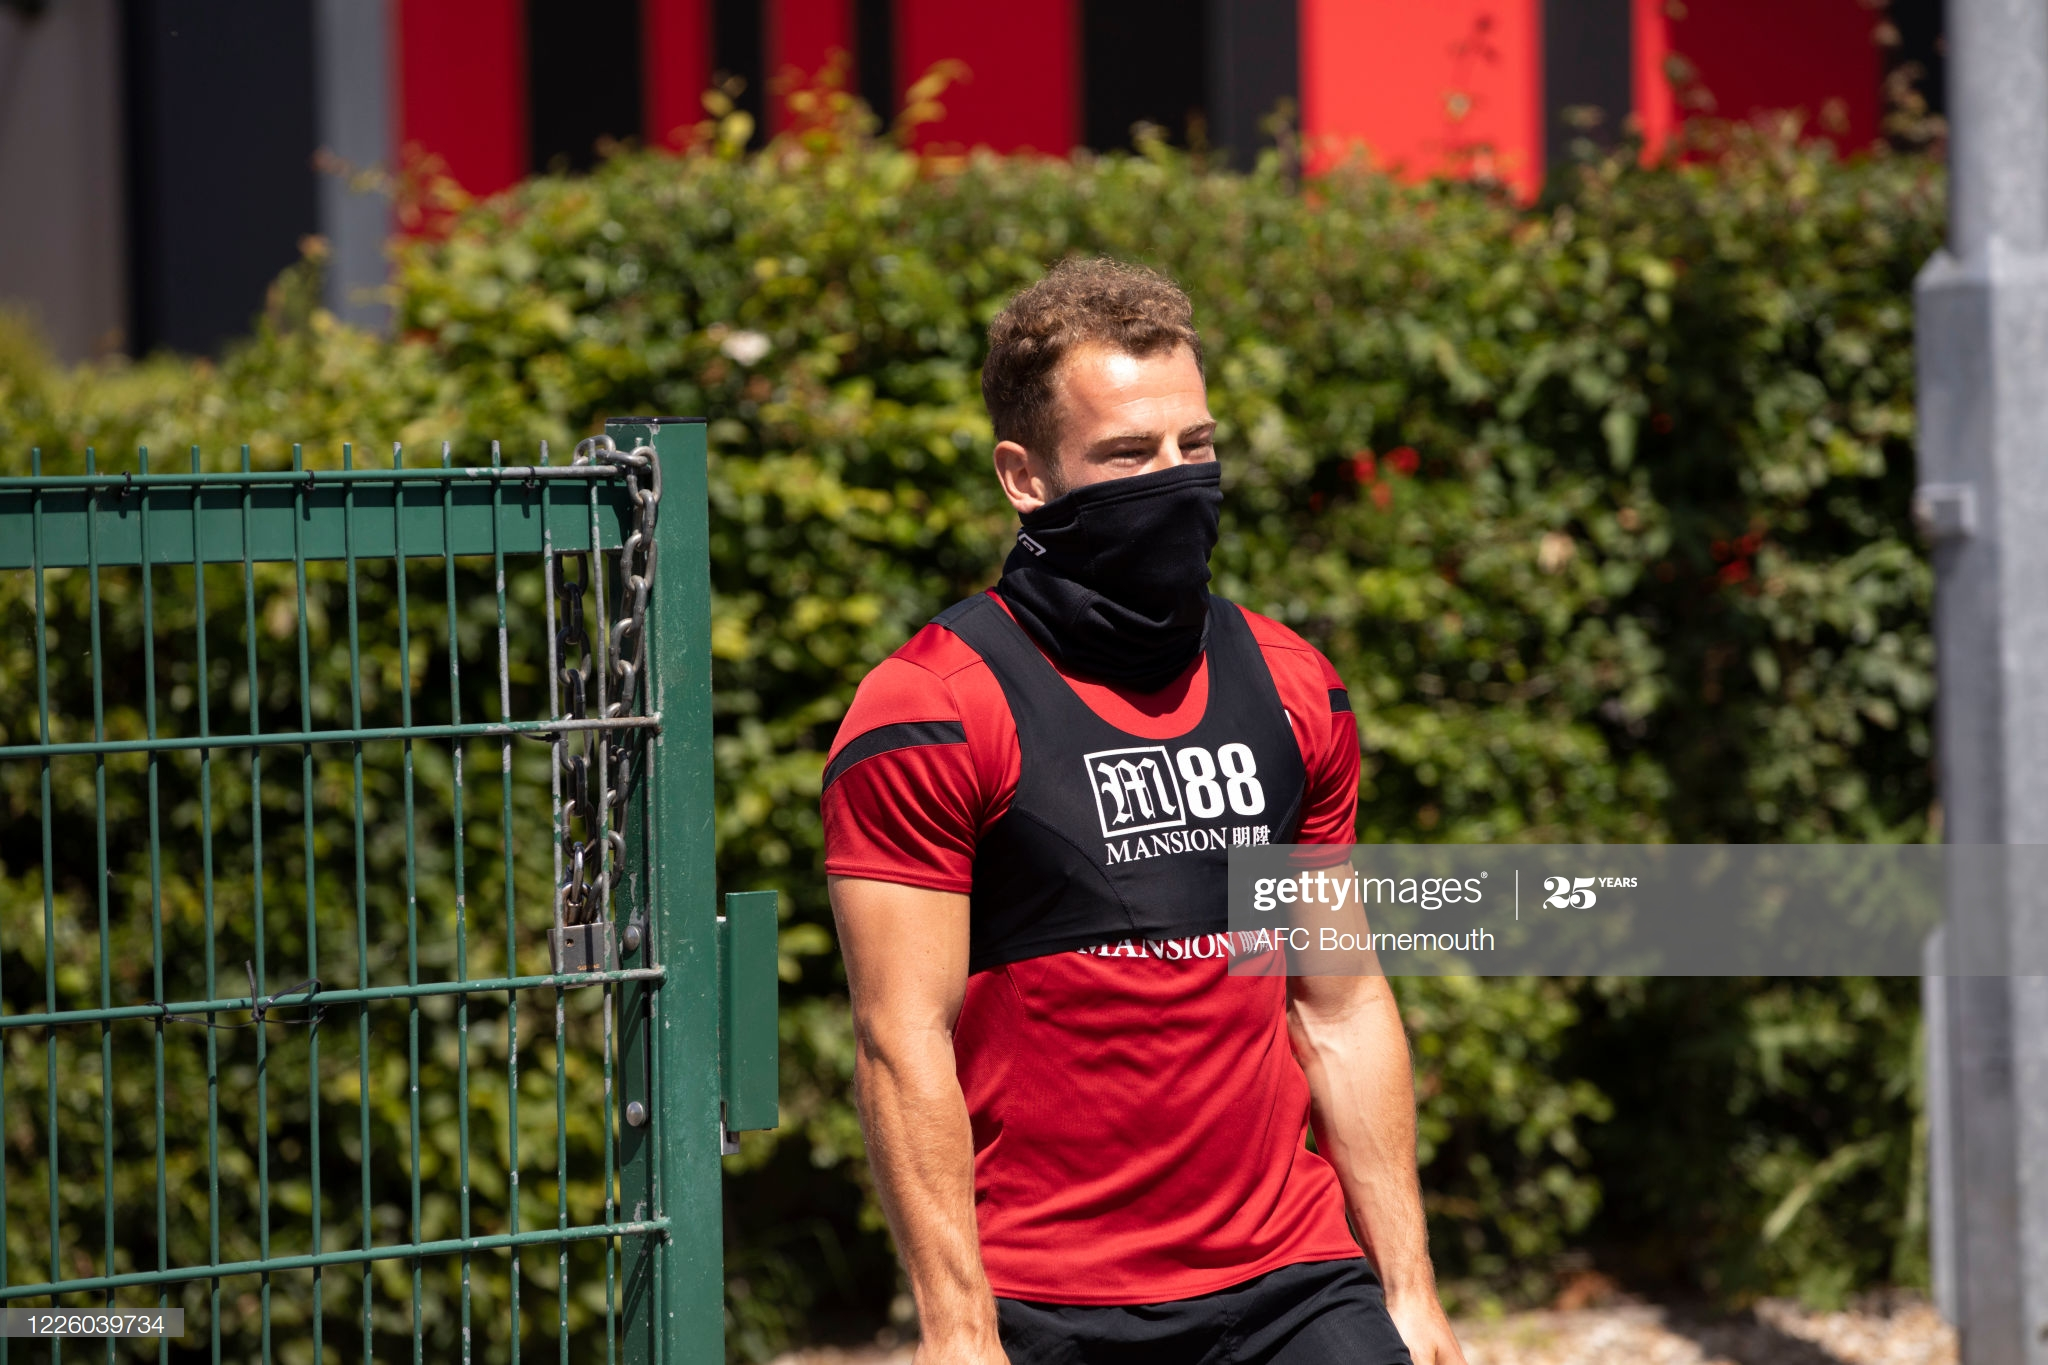 BOURNEMOUTH, ENGLAND - MAY 20: Ryan Fraser of AFC Bournemouth arrives for training after Covid-19 restrictions were relaxed at Vitality Stadium on May 20, 2020 in Bournemouth, England. (Photo by AFC Bournemouth/AFC Bournemouth via Getty Images)